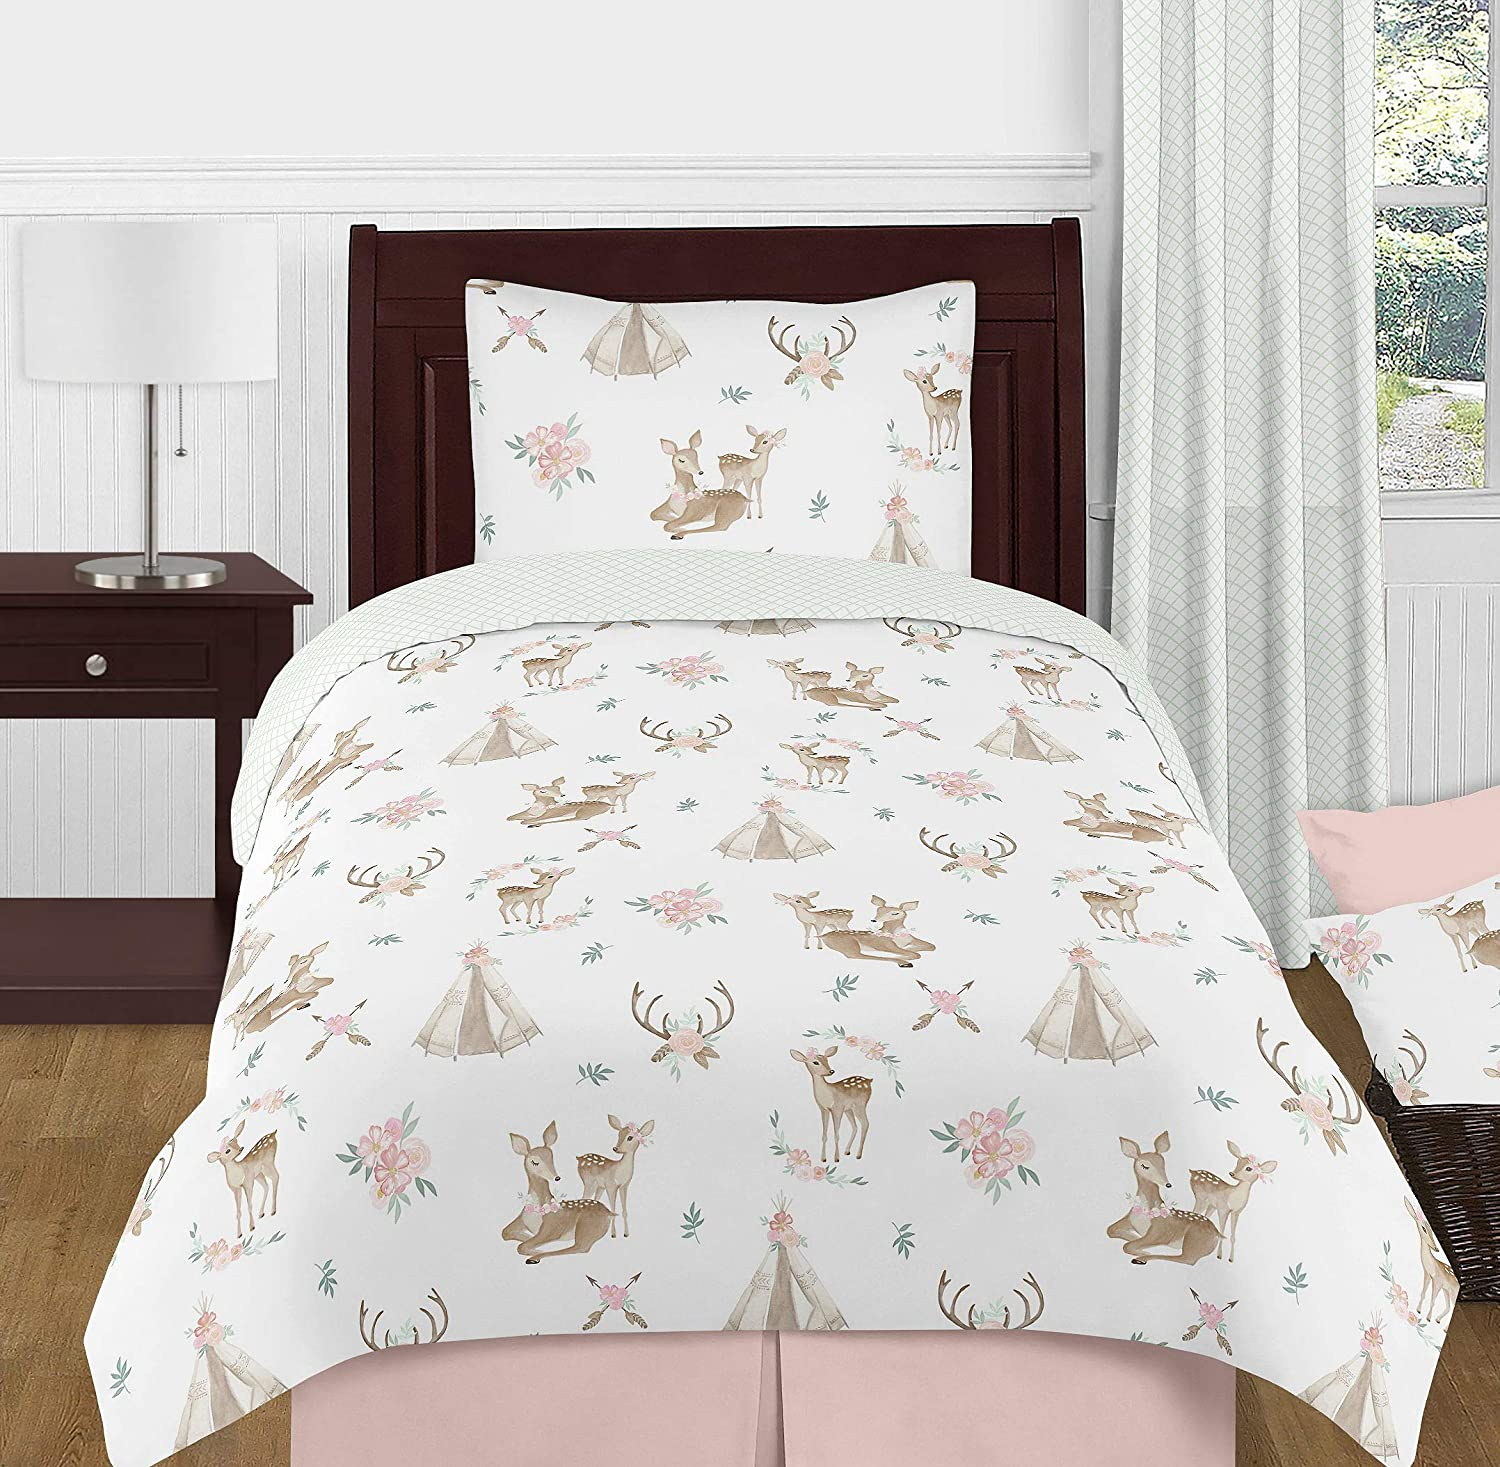 Sweet Jojo Designs Blush Pink, Mint Green and White Boho Watercolor Woodland Deer Floral Girl Twin Kid Childrens Bedding Comforter Set